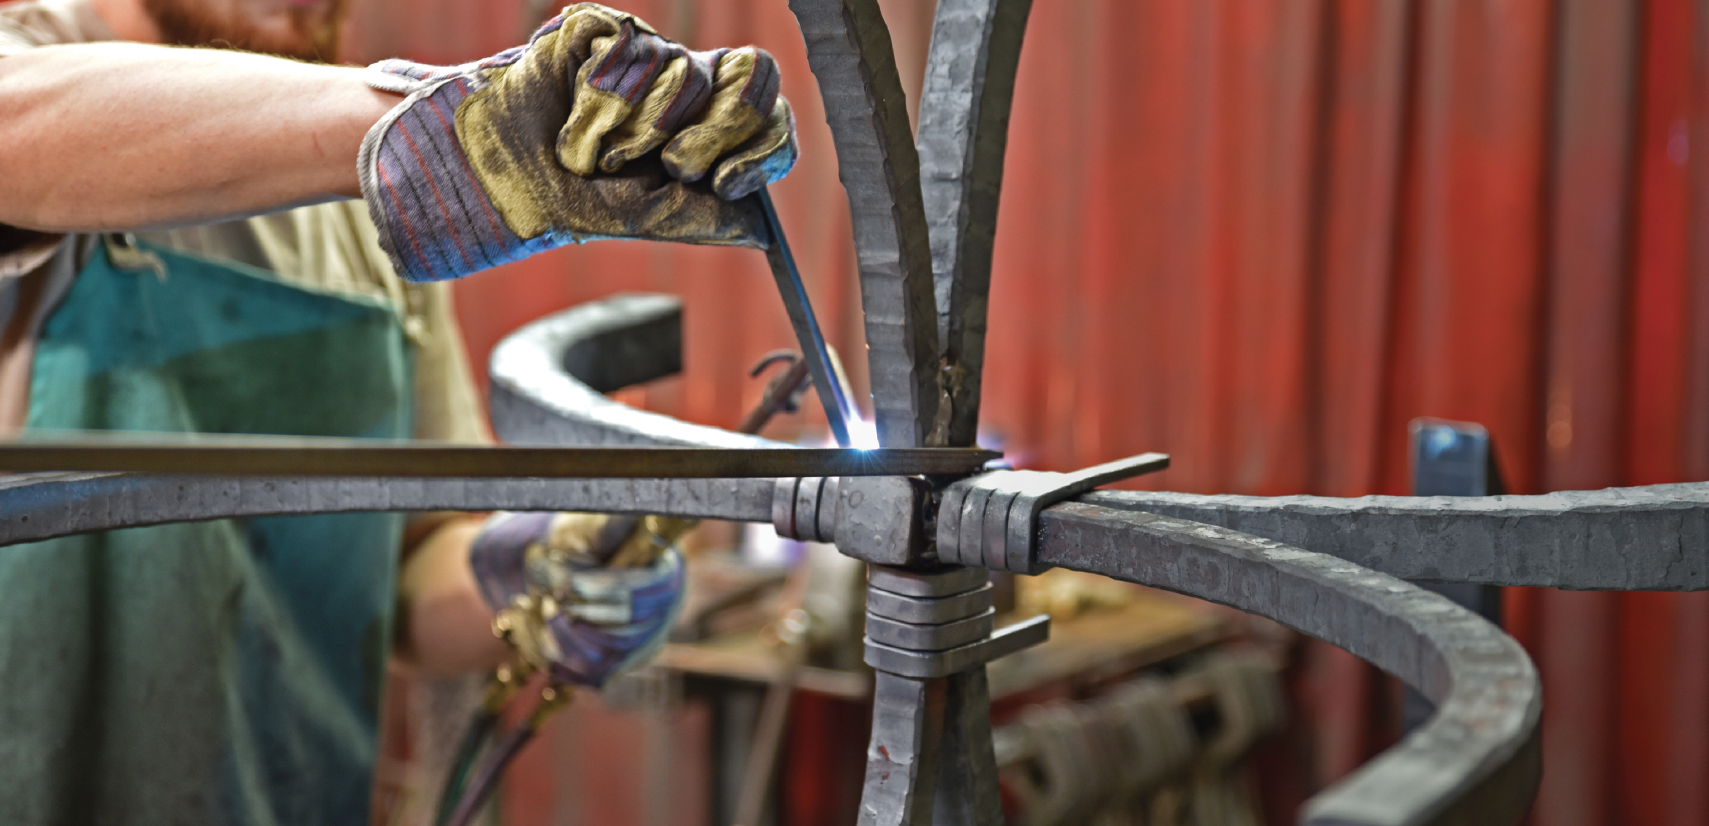 At Charleston Forge In Boone, North Carolina, The Factory Floor Vibrates  With The Concussion Of Hammers Against Anvils As Skilled Artists Create  Stunning, ...